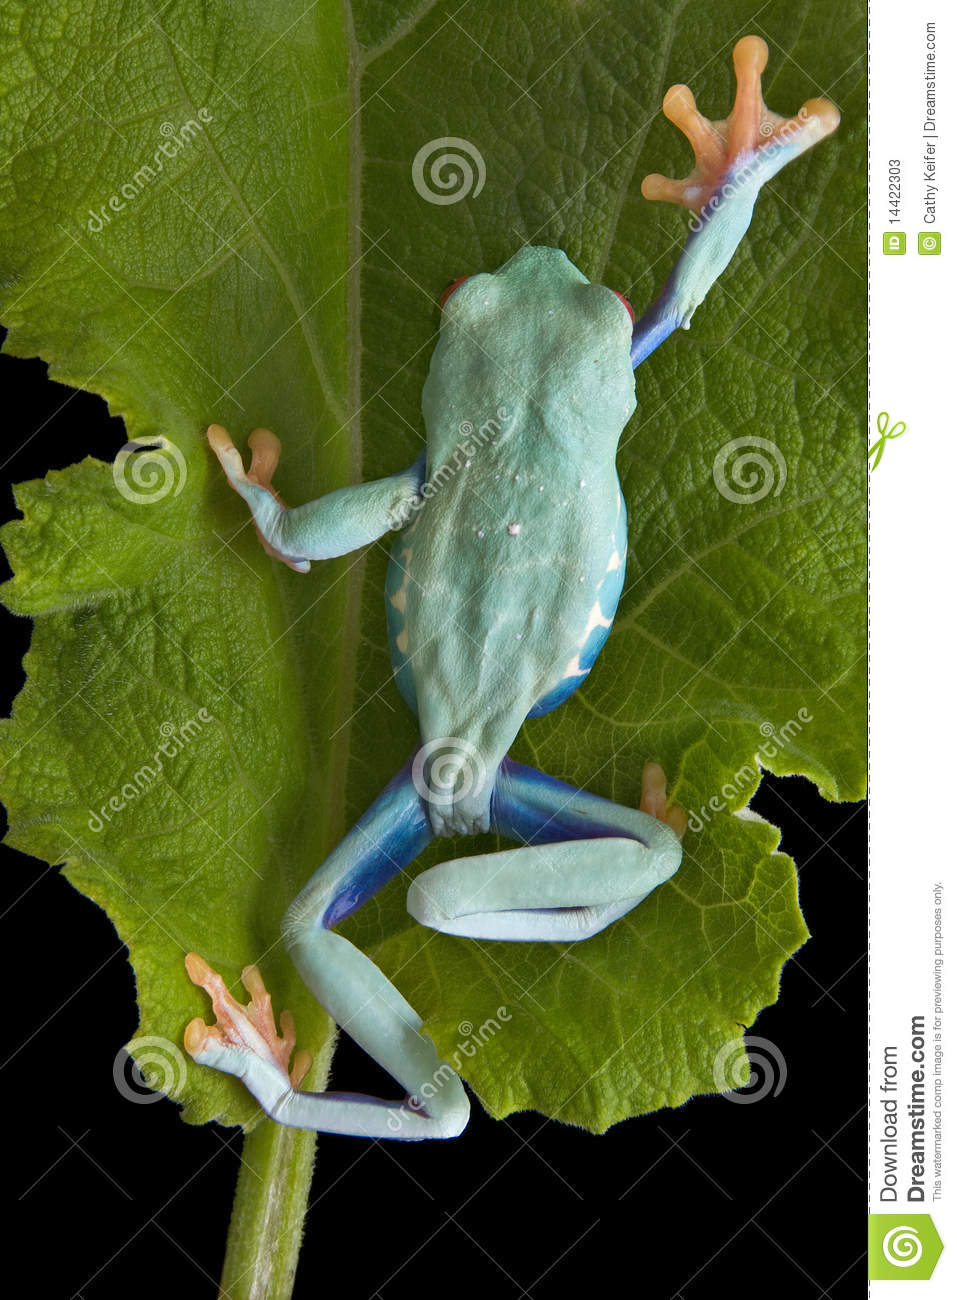 Climbing Tree Frog Stock Photos - Image: 14422303